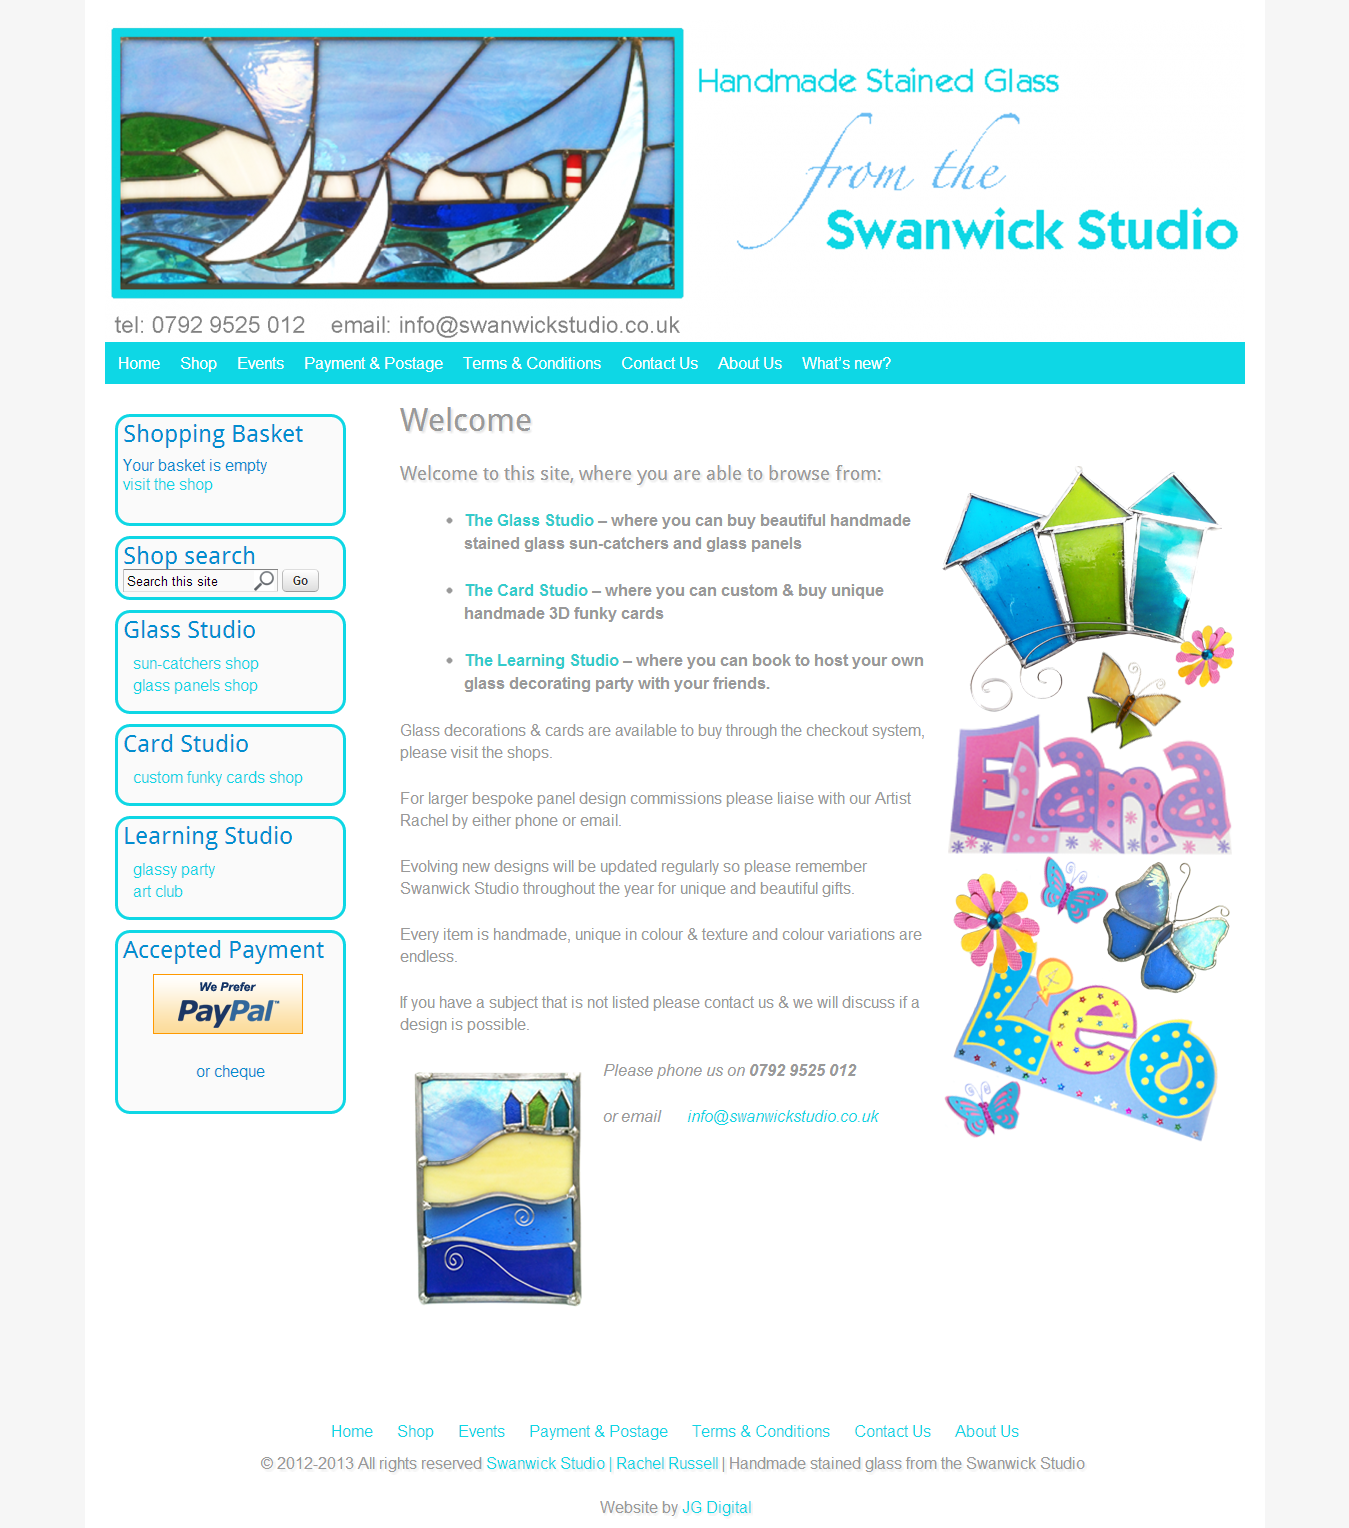 Swanwick Studio - handmade stained glass